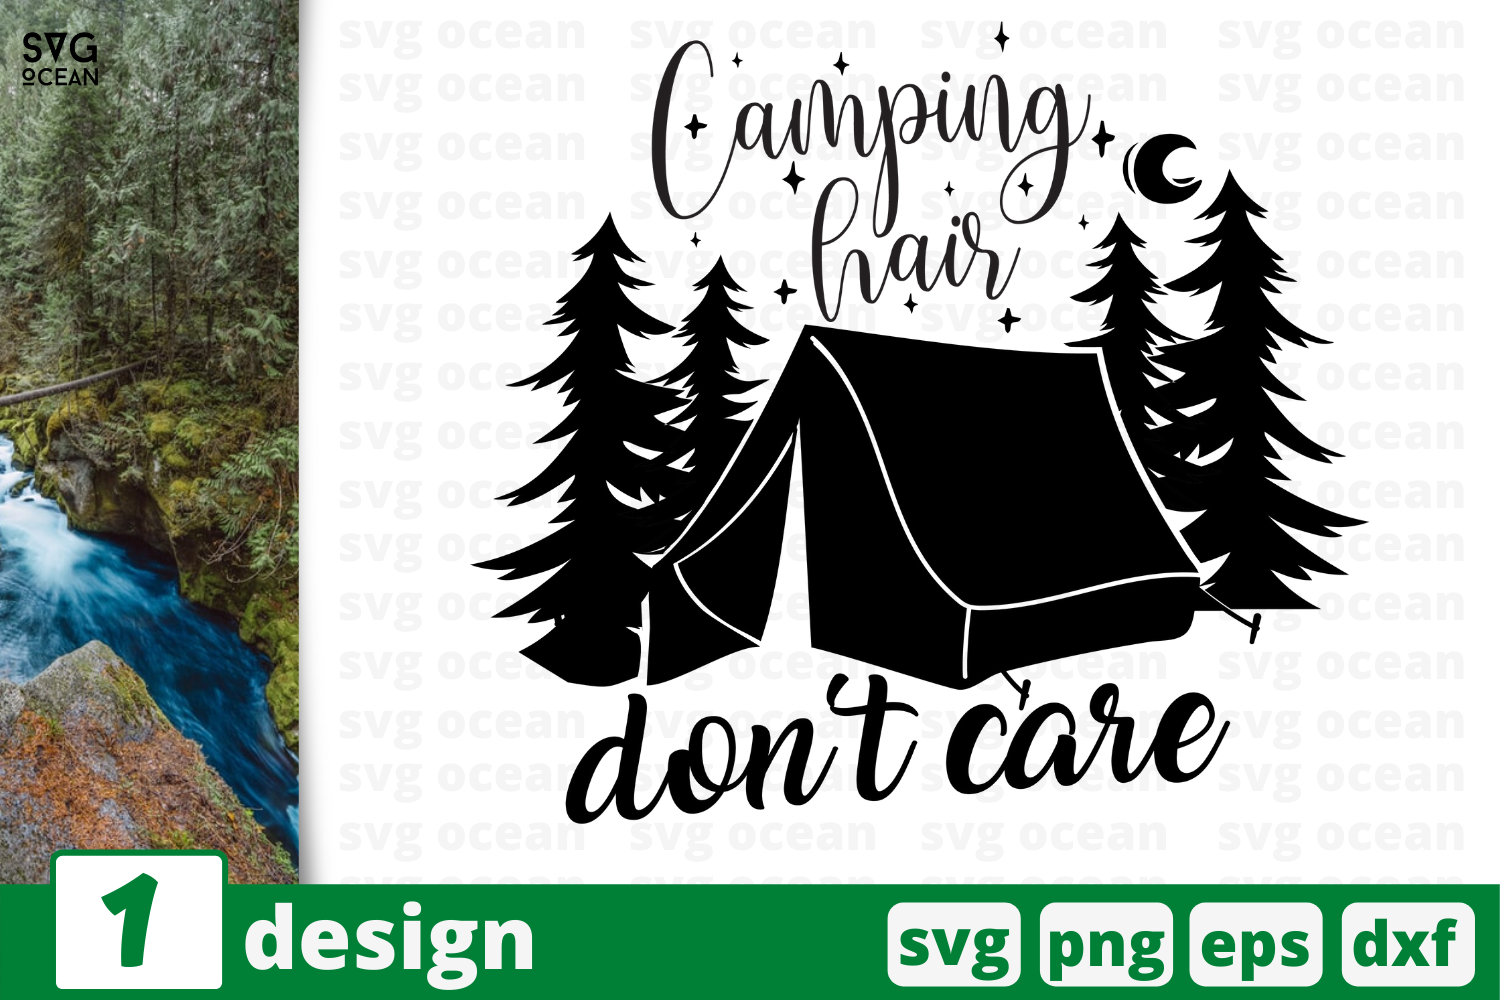 Download Free Camping Hair Don T Care Graphic By Svgocean Creative Fabrica for Cricut Explore, Silhouette and other cutting machines.